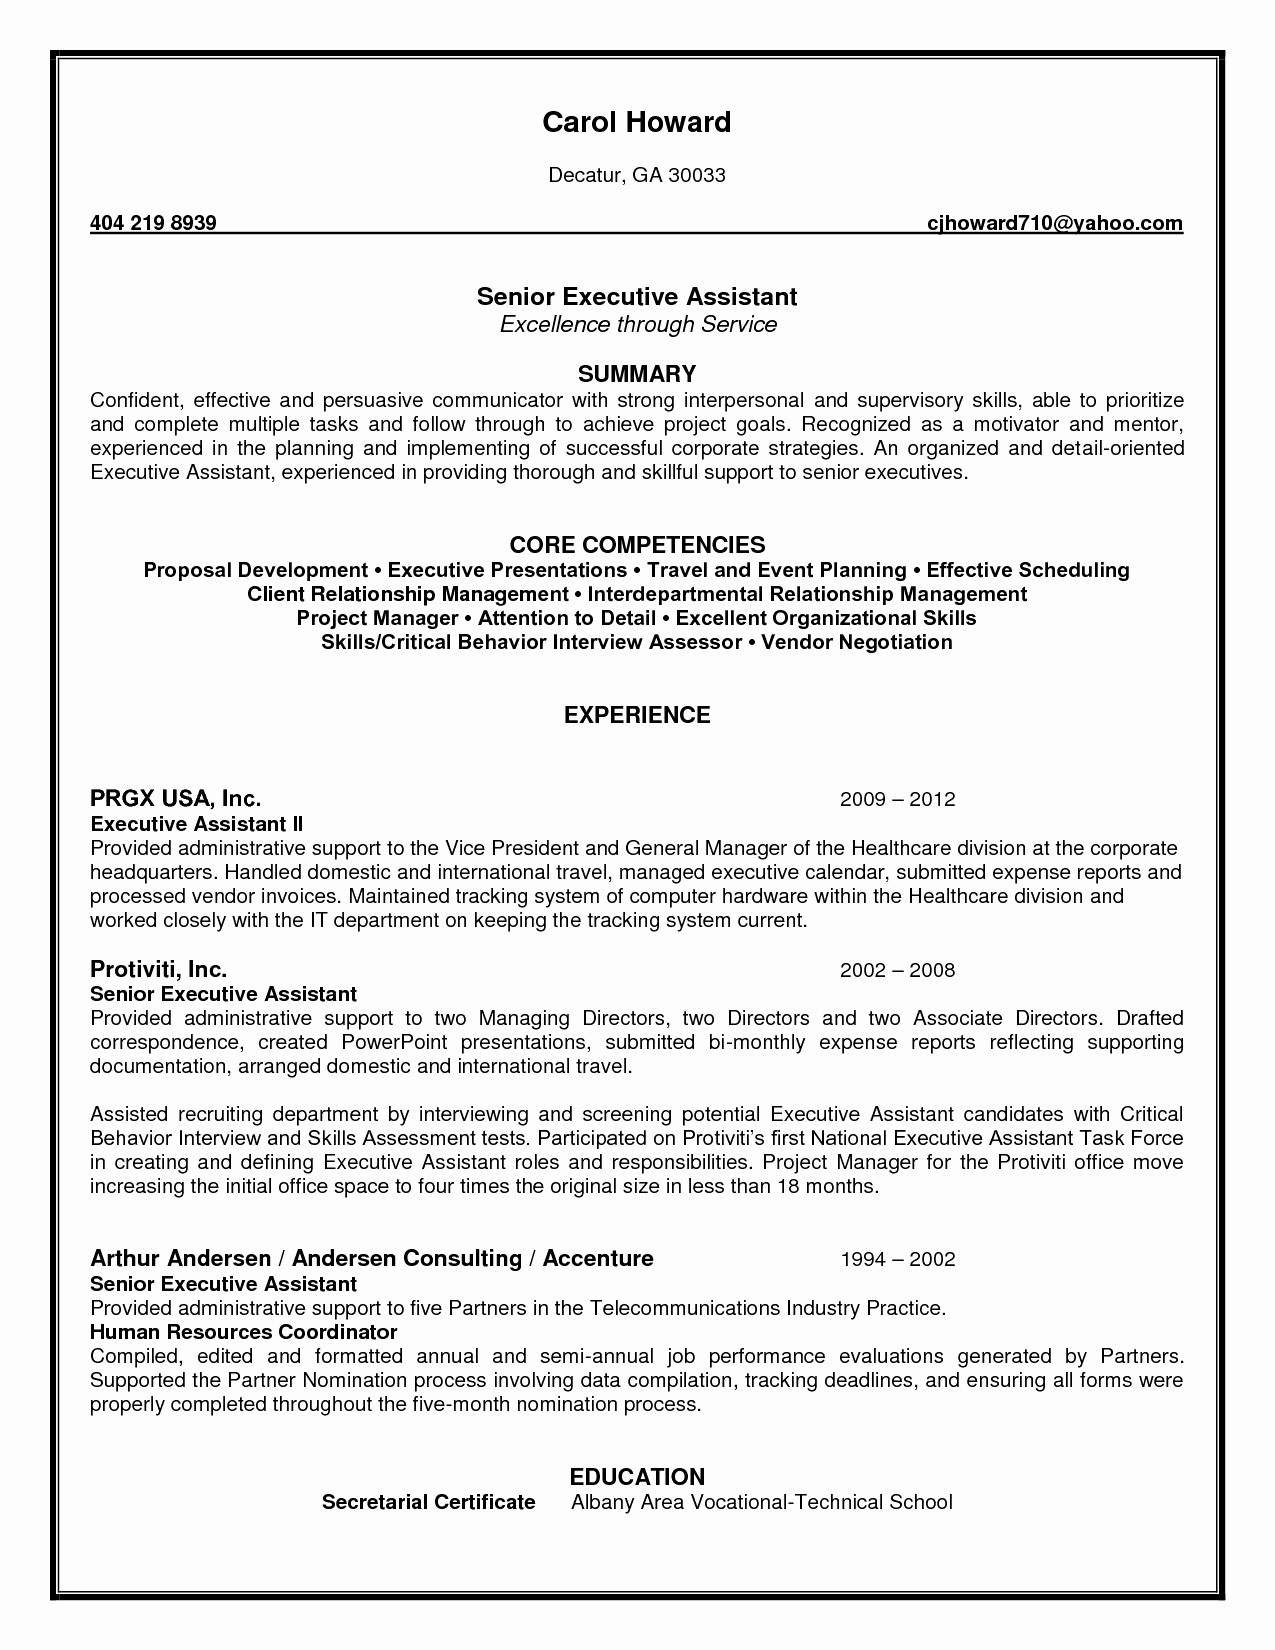 Office Job Resume - Executive assistant Resumes Unique Resume Template Executive